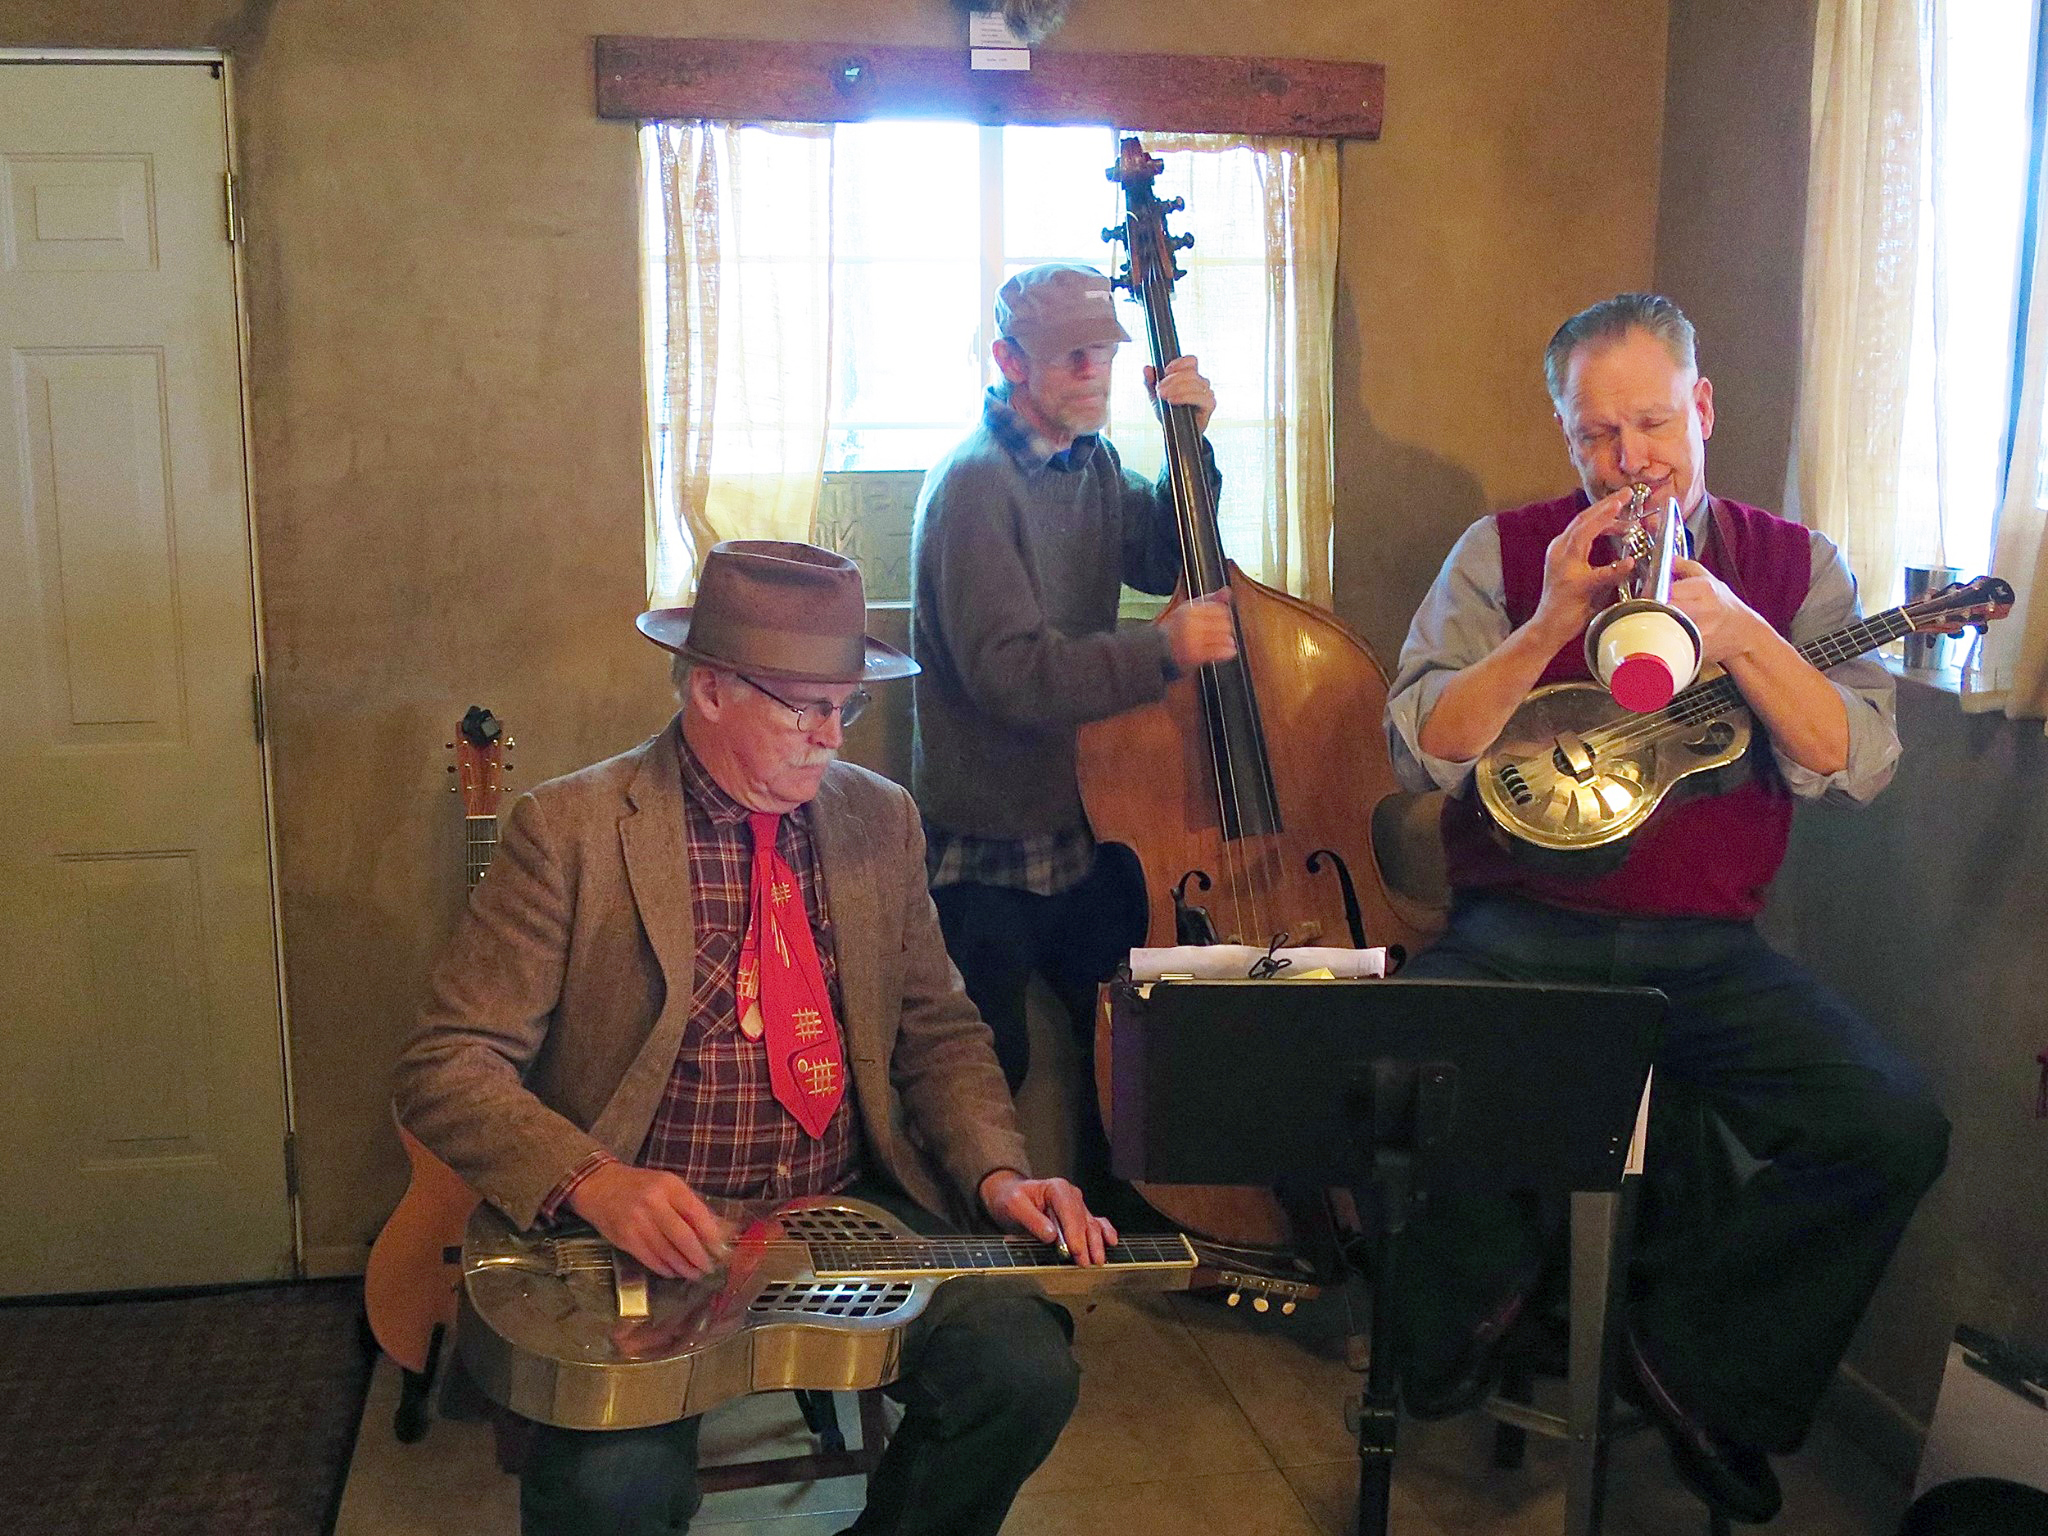 Photo caption: Armstrong, Cary & MacGill will present a free outdoor concert on Thursday July 27 at 7:00 p.m. at the Rotary Park Gazebo in Winters. This will be the last performance of the Winters Friends of the Library summer concert series.